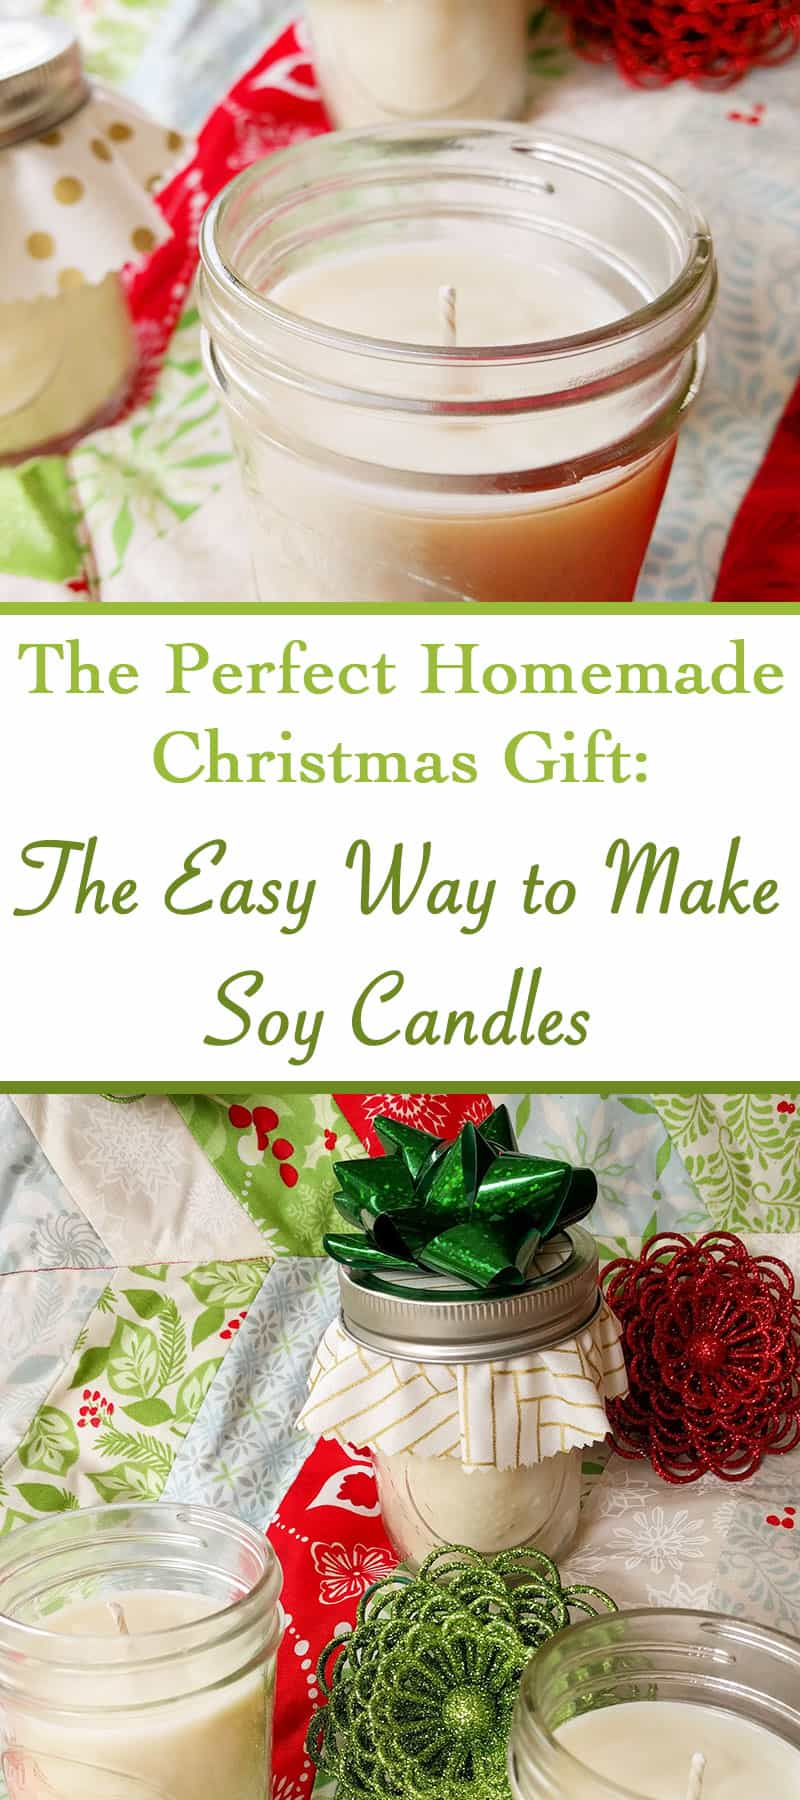 DIY soy candles! This is an great tutorial - gonna make handmade Christmas gifts this year. Such cute soy candles in mason jars! The scents must be amazing! This looks so easy! #candles #candlemaking #DIY #giftideas #Christmas #homemade #diygifts #homemadegift #giftsforwomen #giftsforher #giftsforteachers